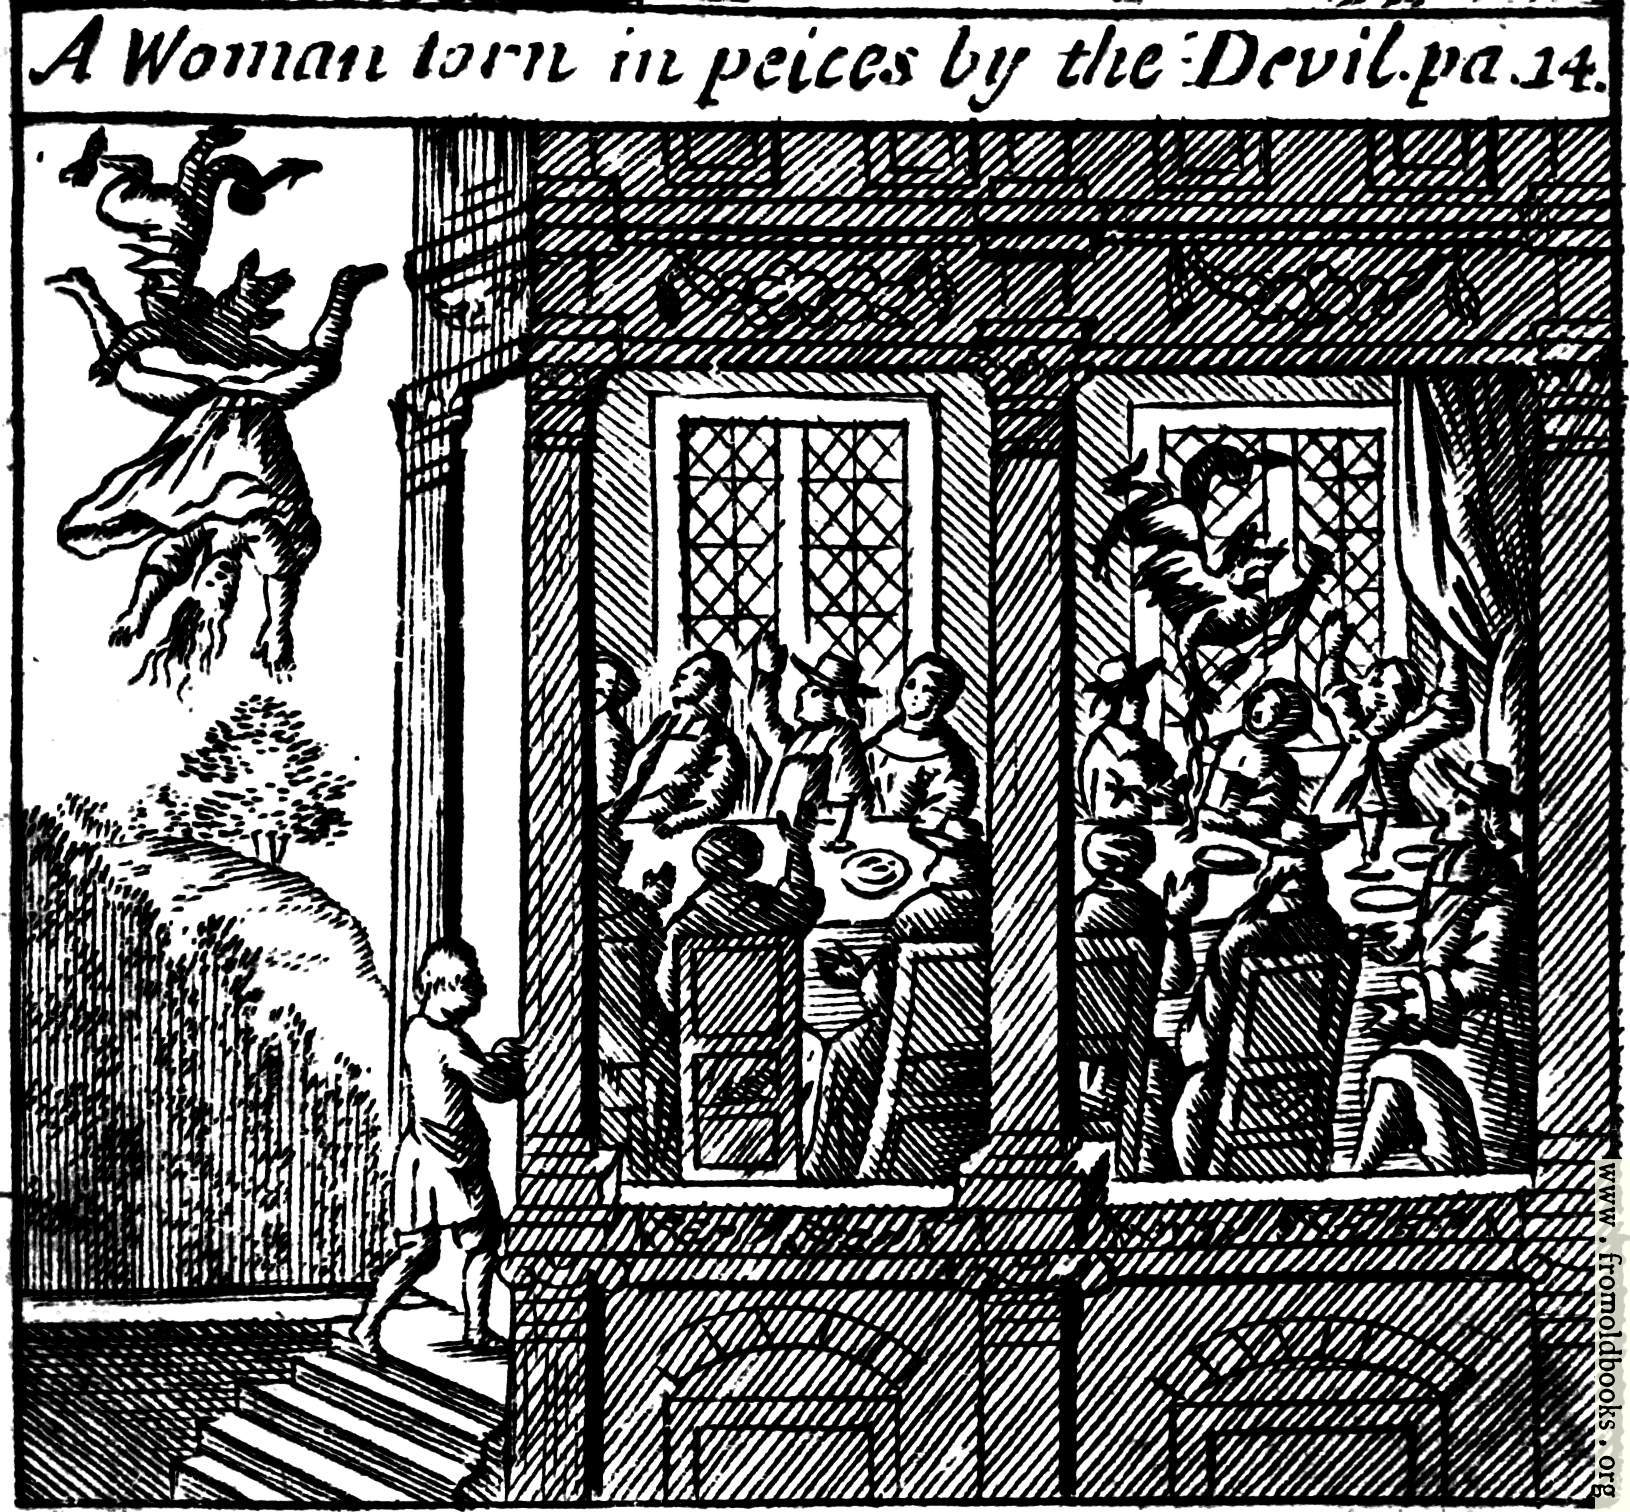 [Picture: A Woman torn in pieces by the Devil. pa. 14.]